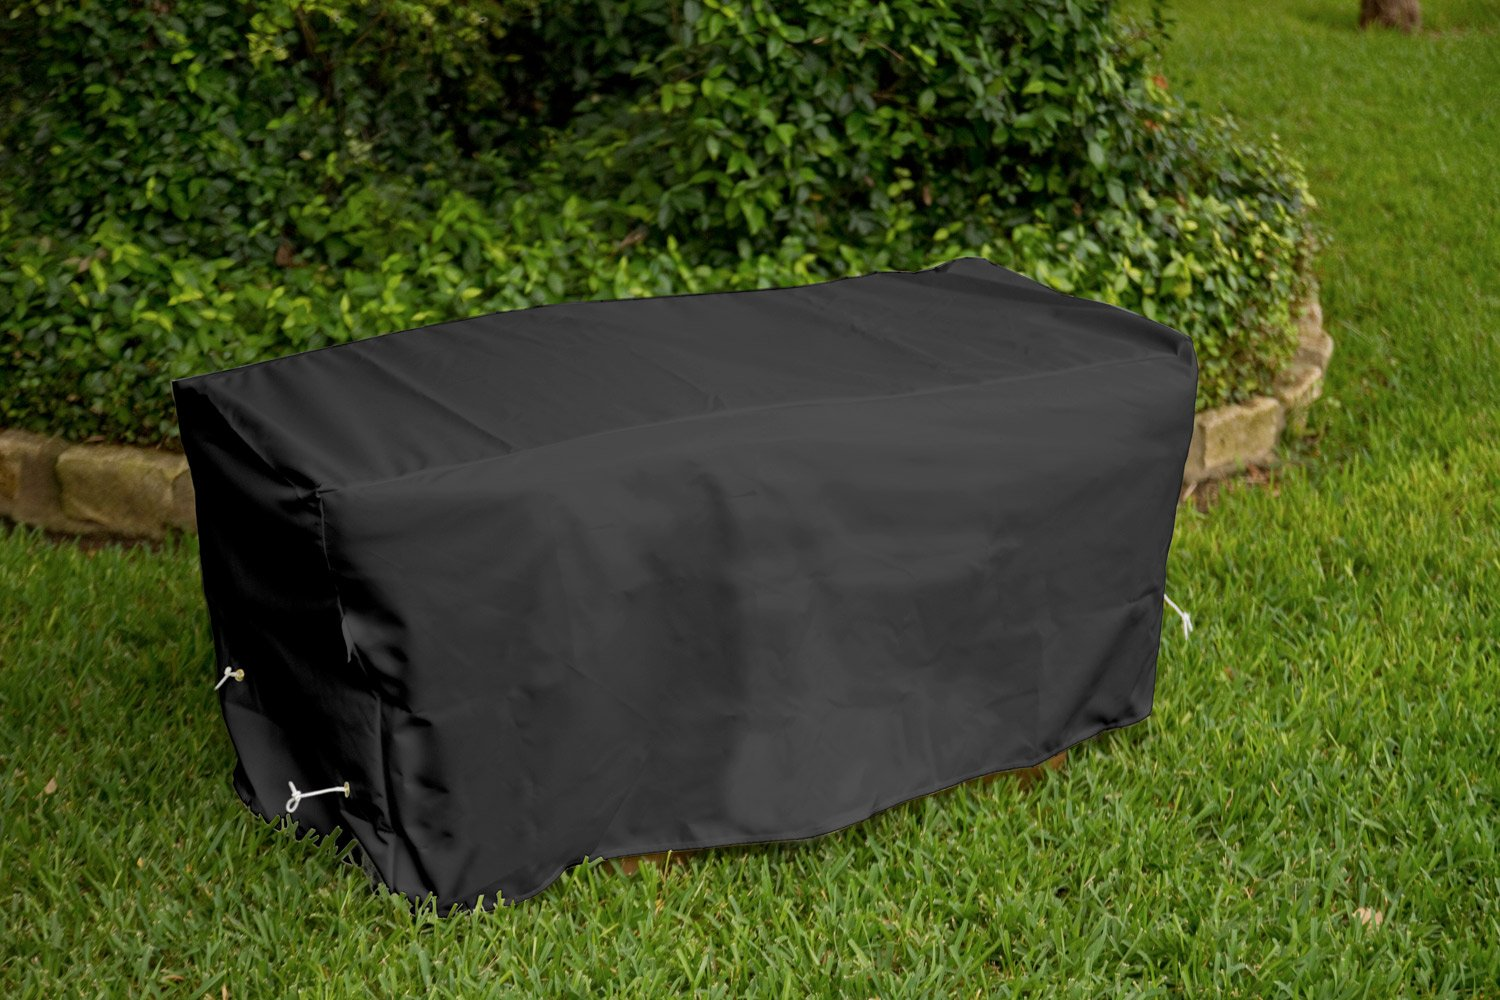 KoverRoos Weathermax 74207 8-Feet Bench Cover, 96-Inch Width by 25-Inch Diameter by 36-Inch Height, Black by KOVERROOS (Image #4)